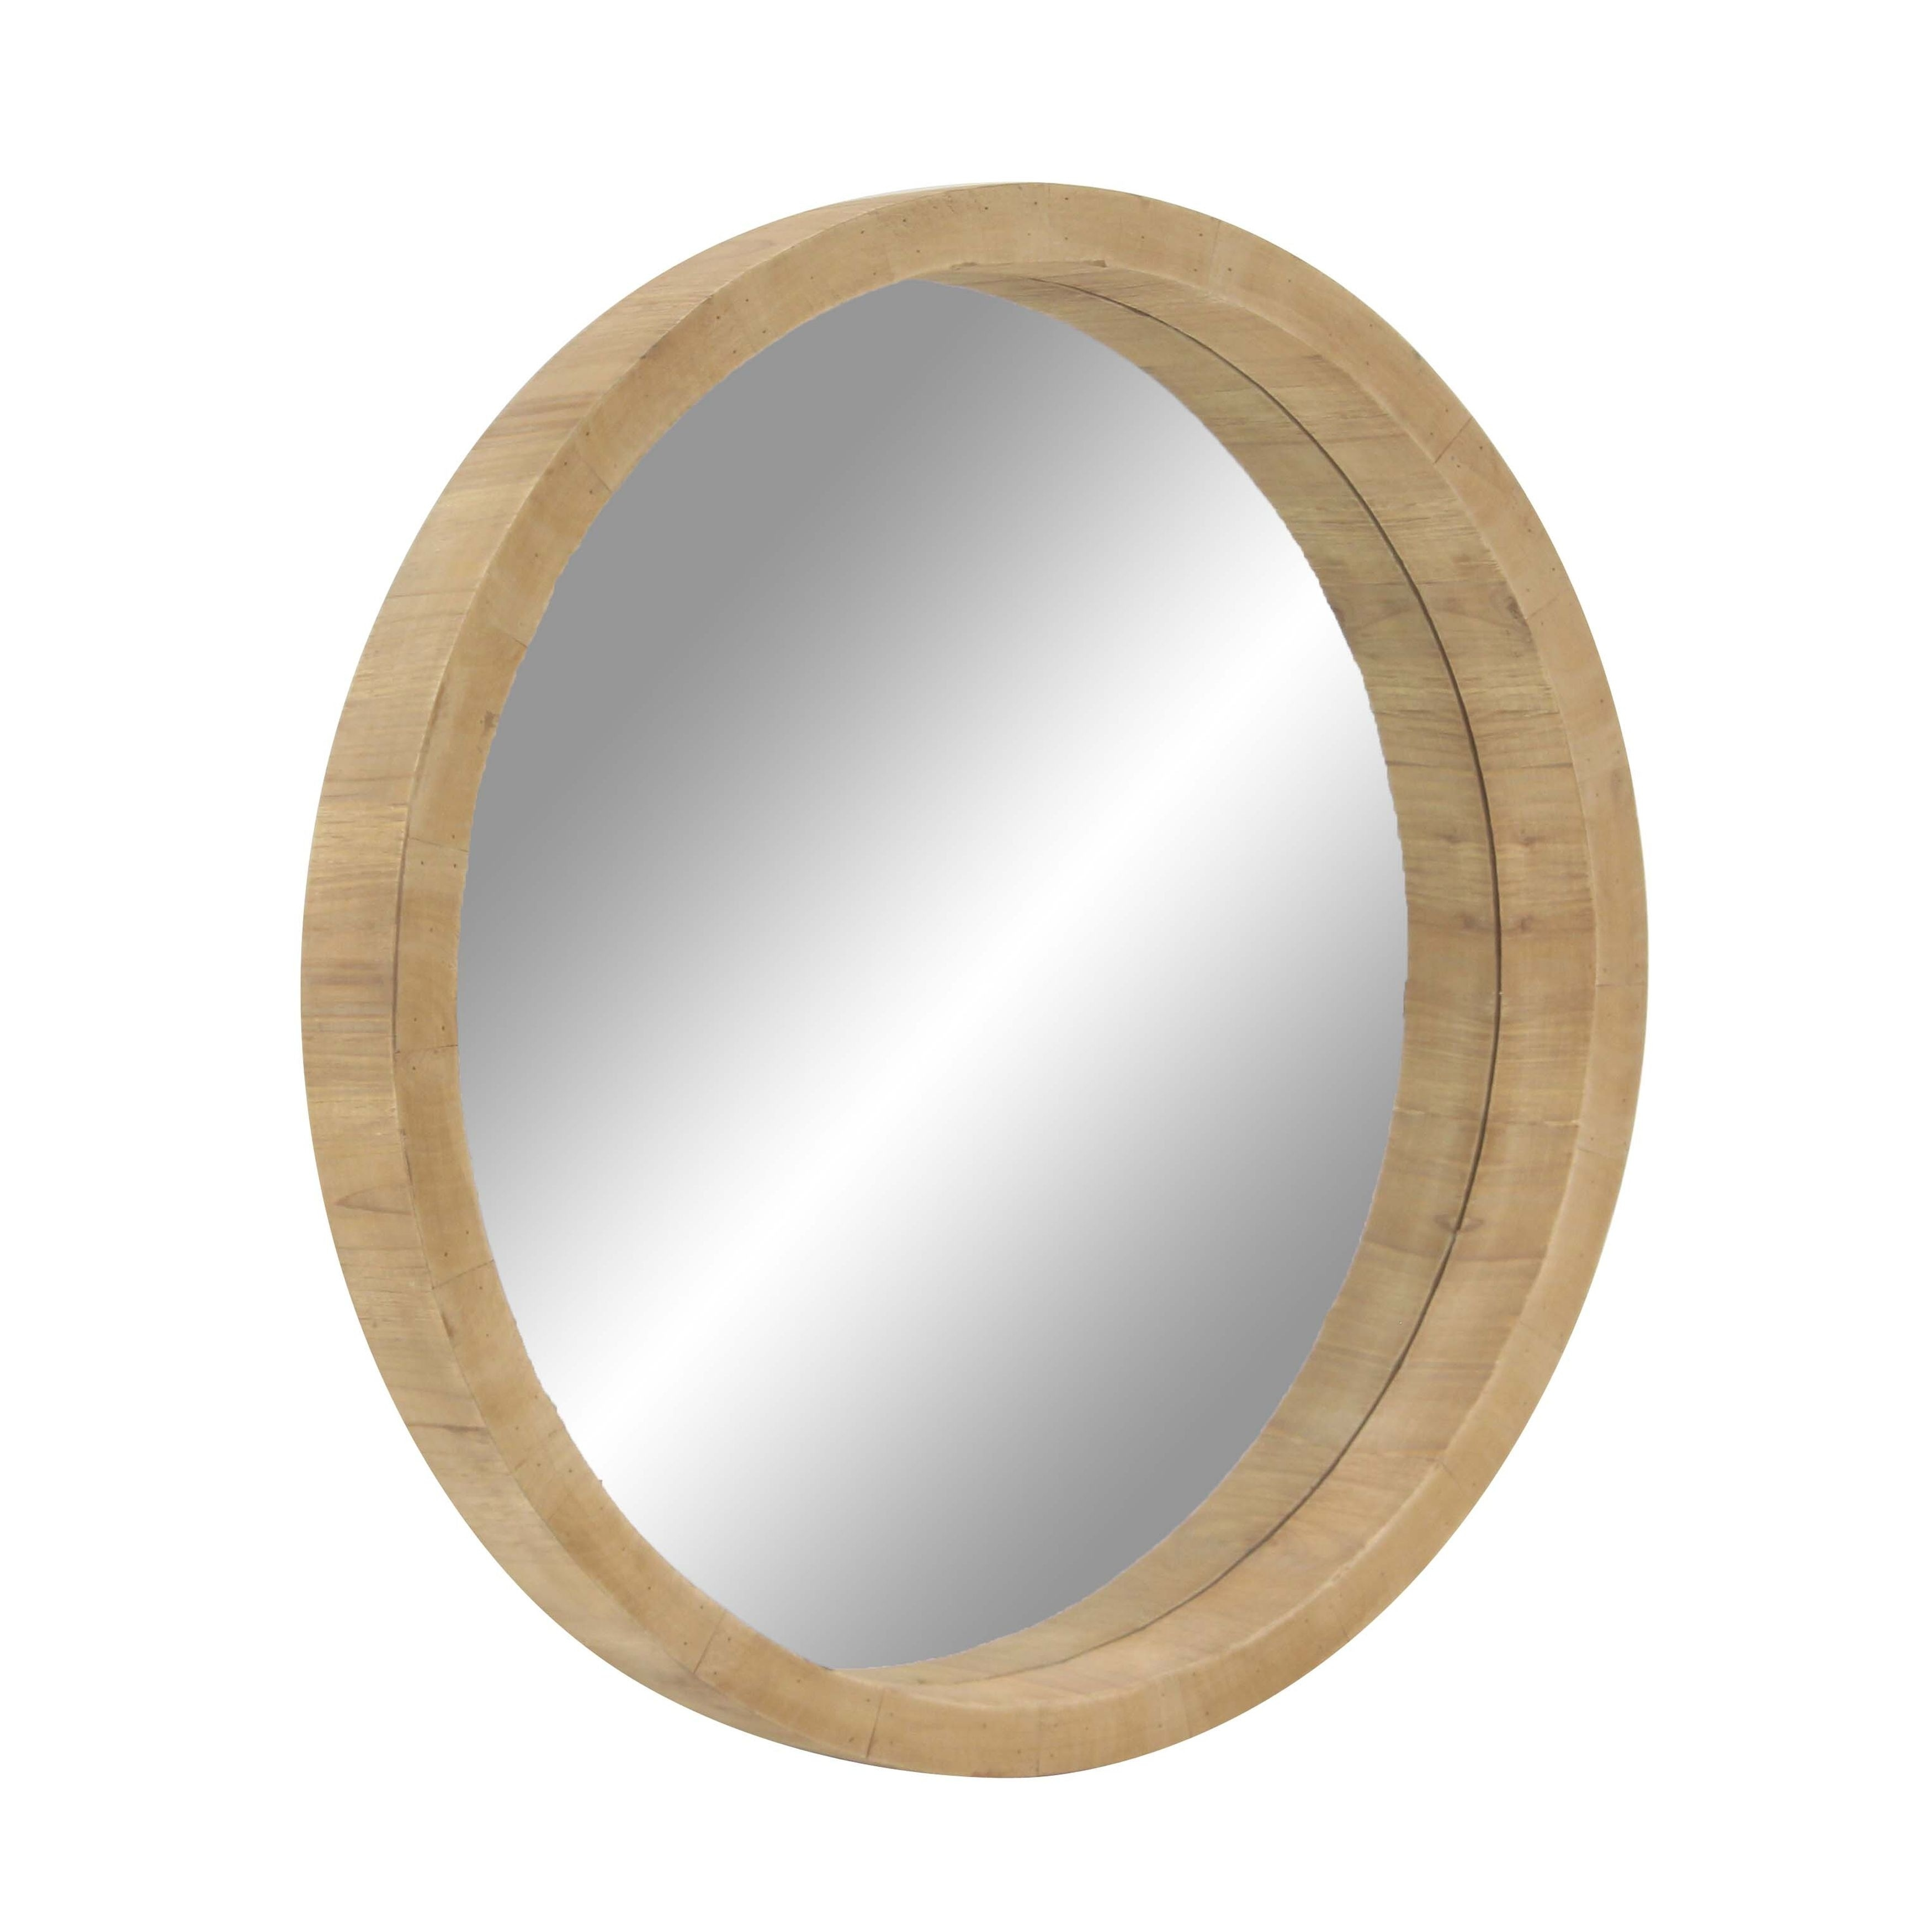 32 Inch Rustic Wooden Round Wall Mirror Brown Free Shipping Today 19565797